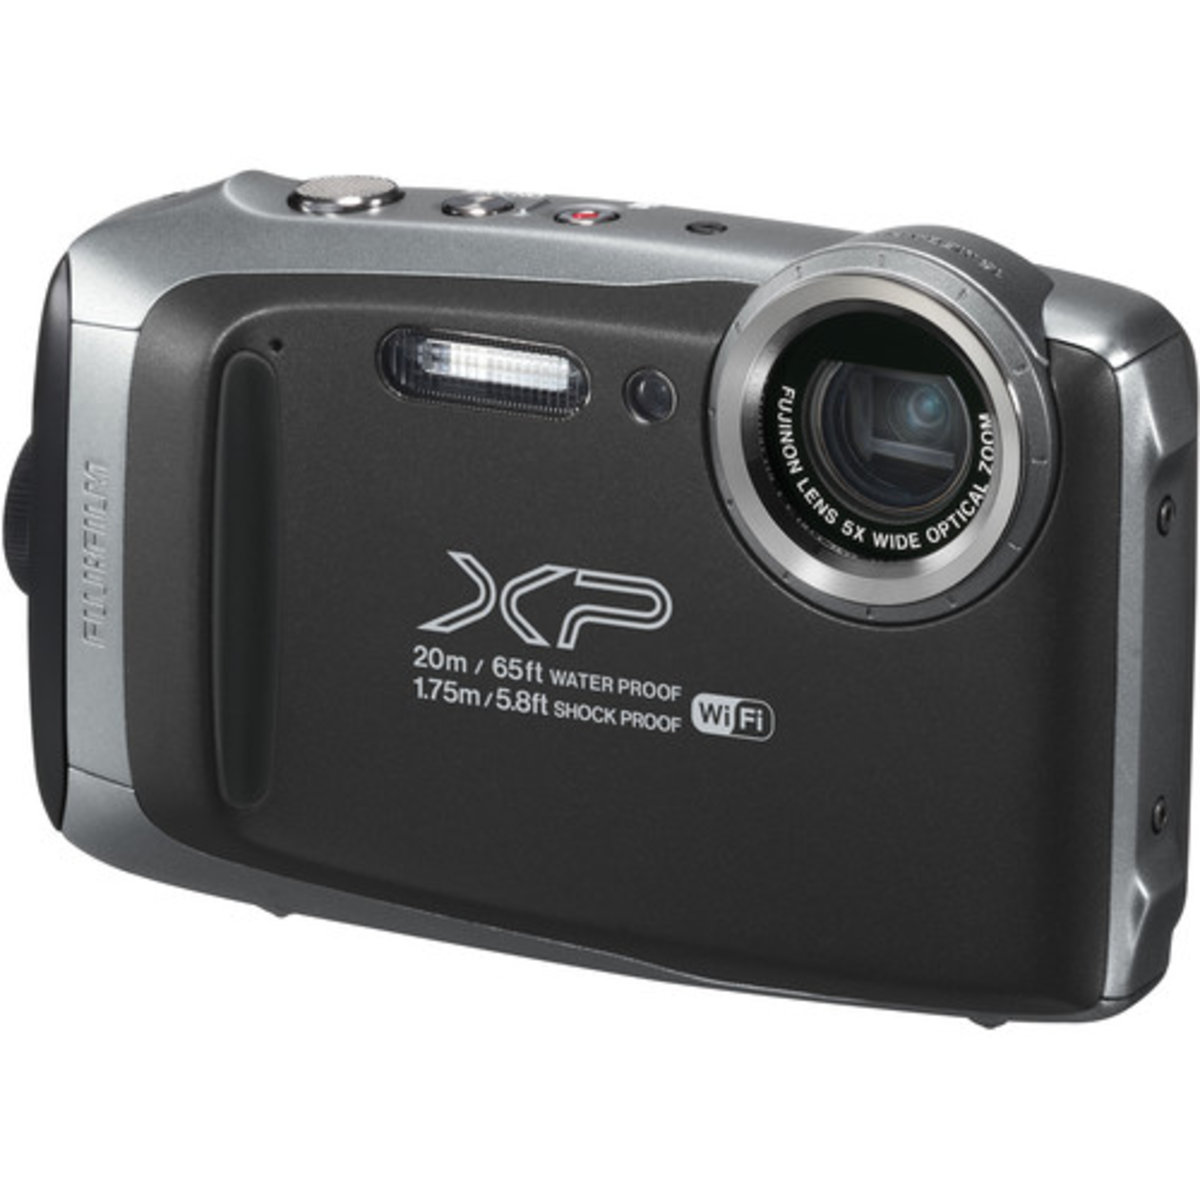 FinePix XP130 Digital Camera - [Dark Silver] - Parallel imported